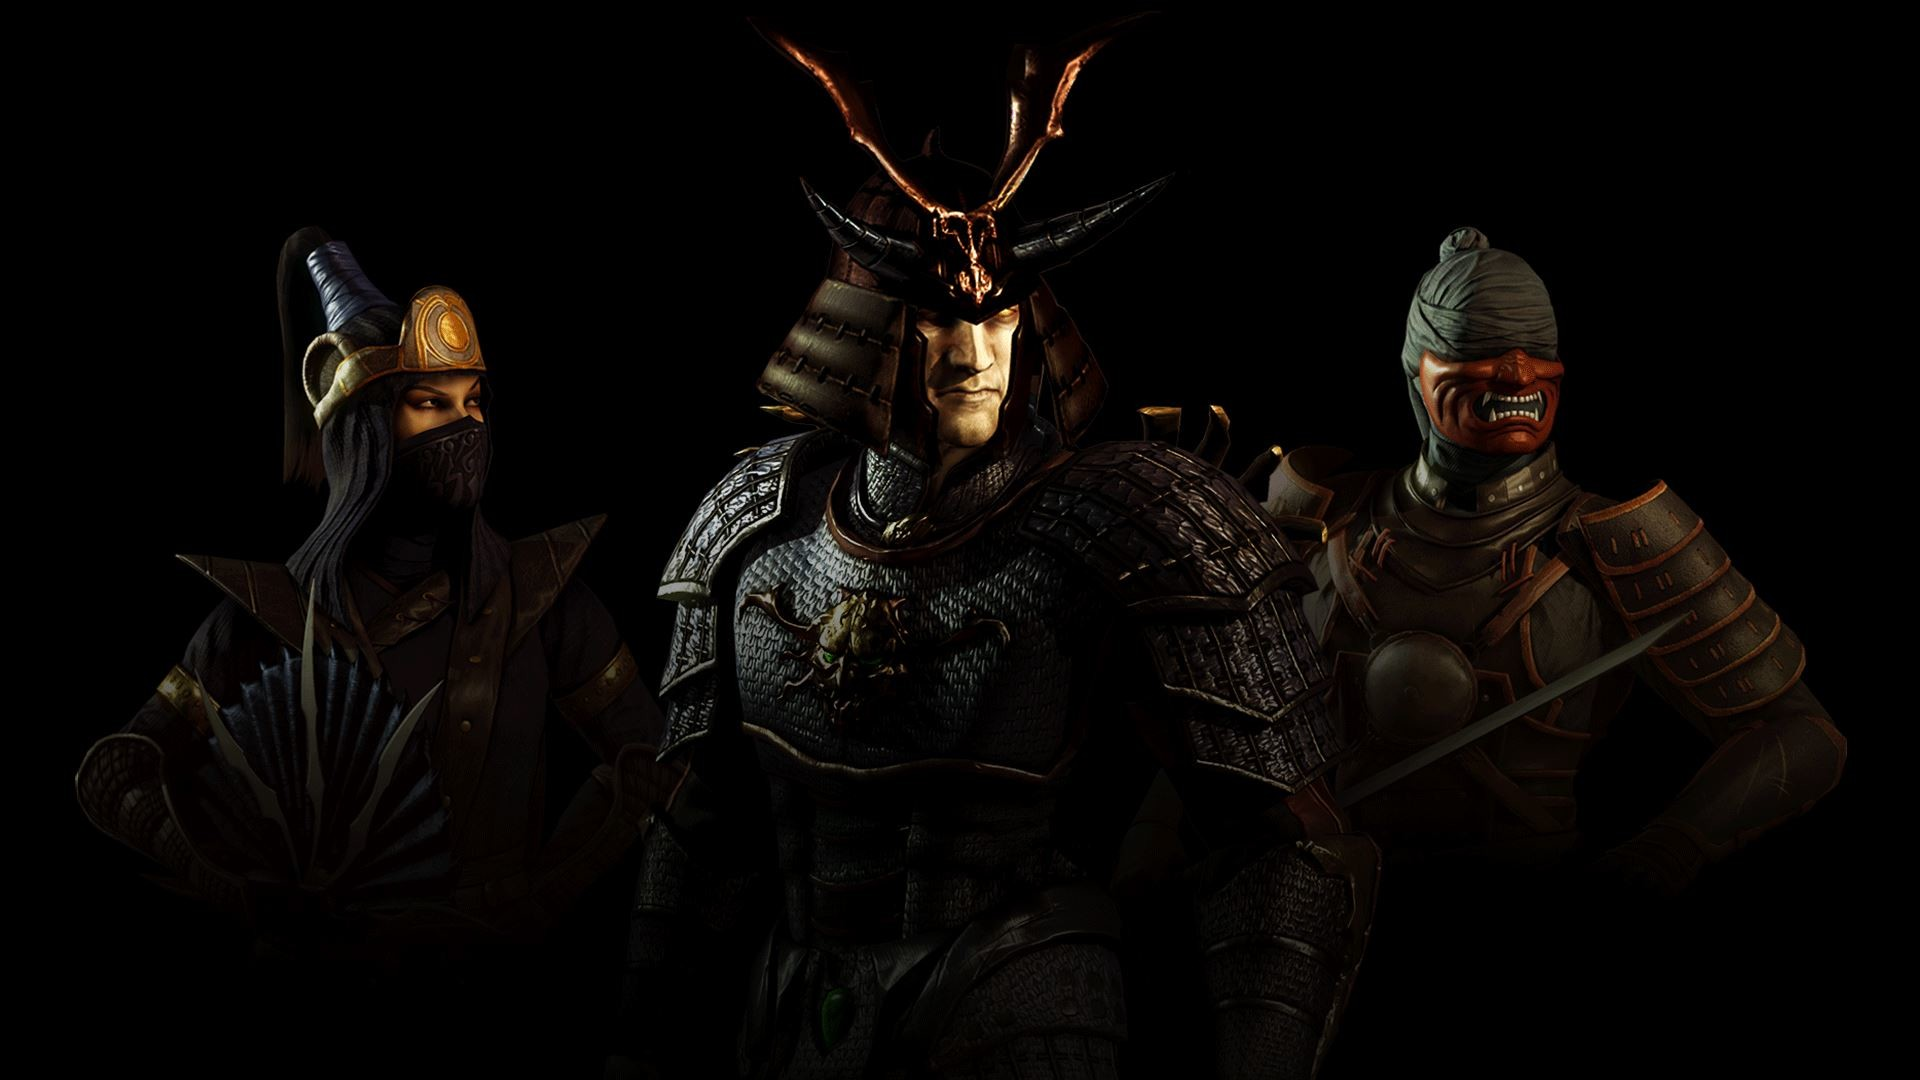 1920x1080 Xbox One download size for the Samurai Pack DLC in Mortal Kombat X